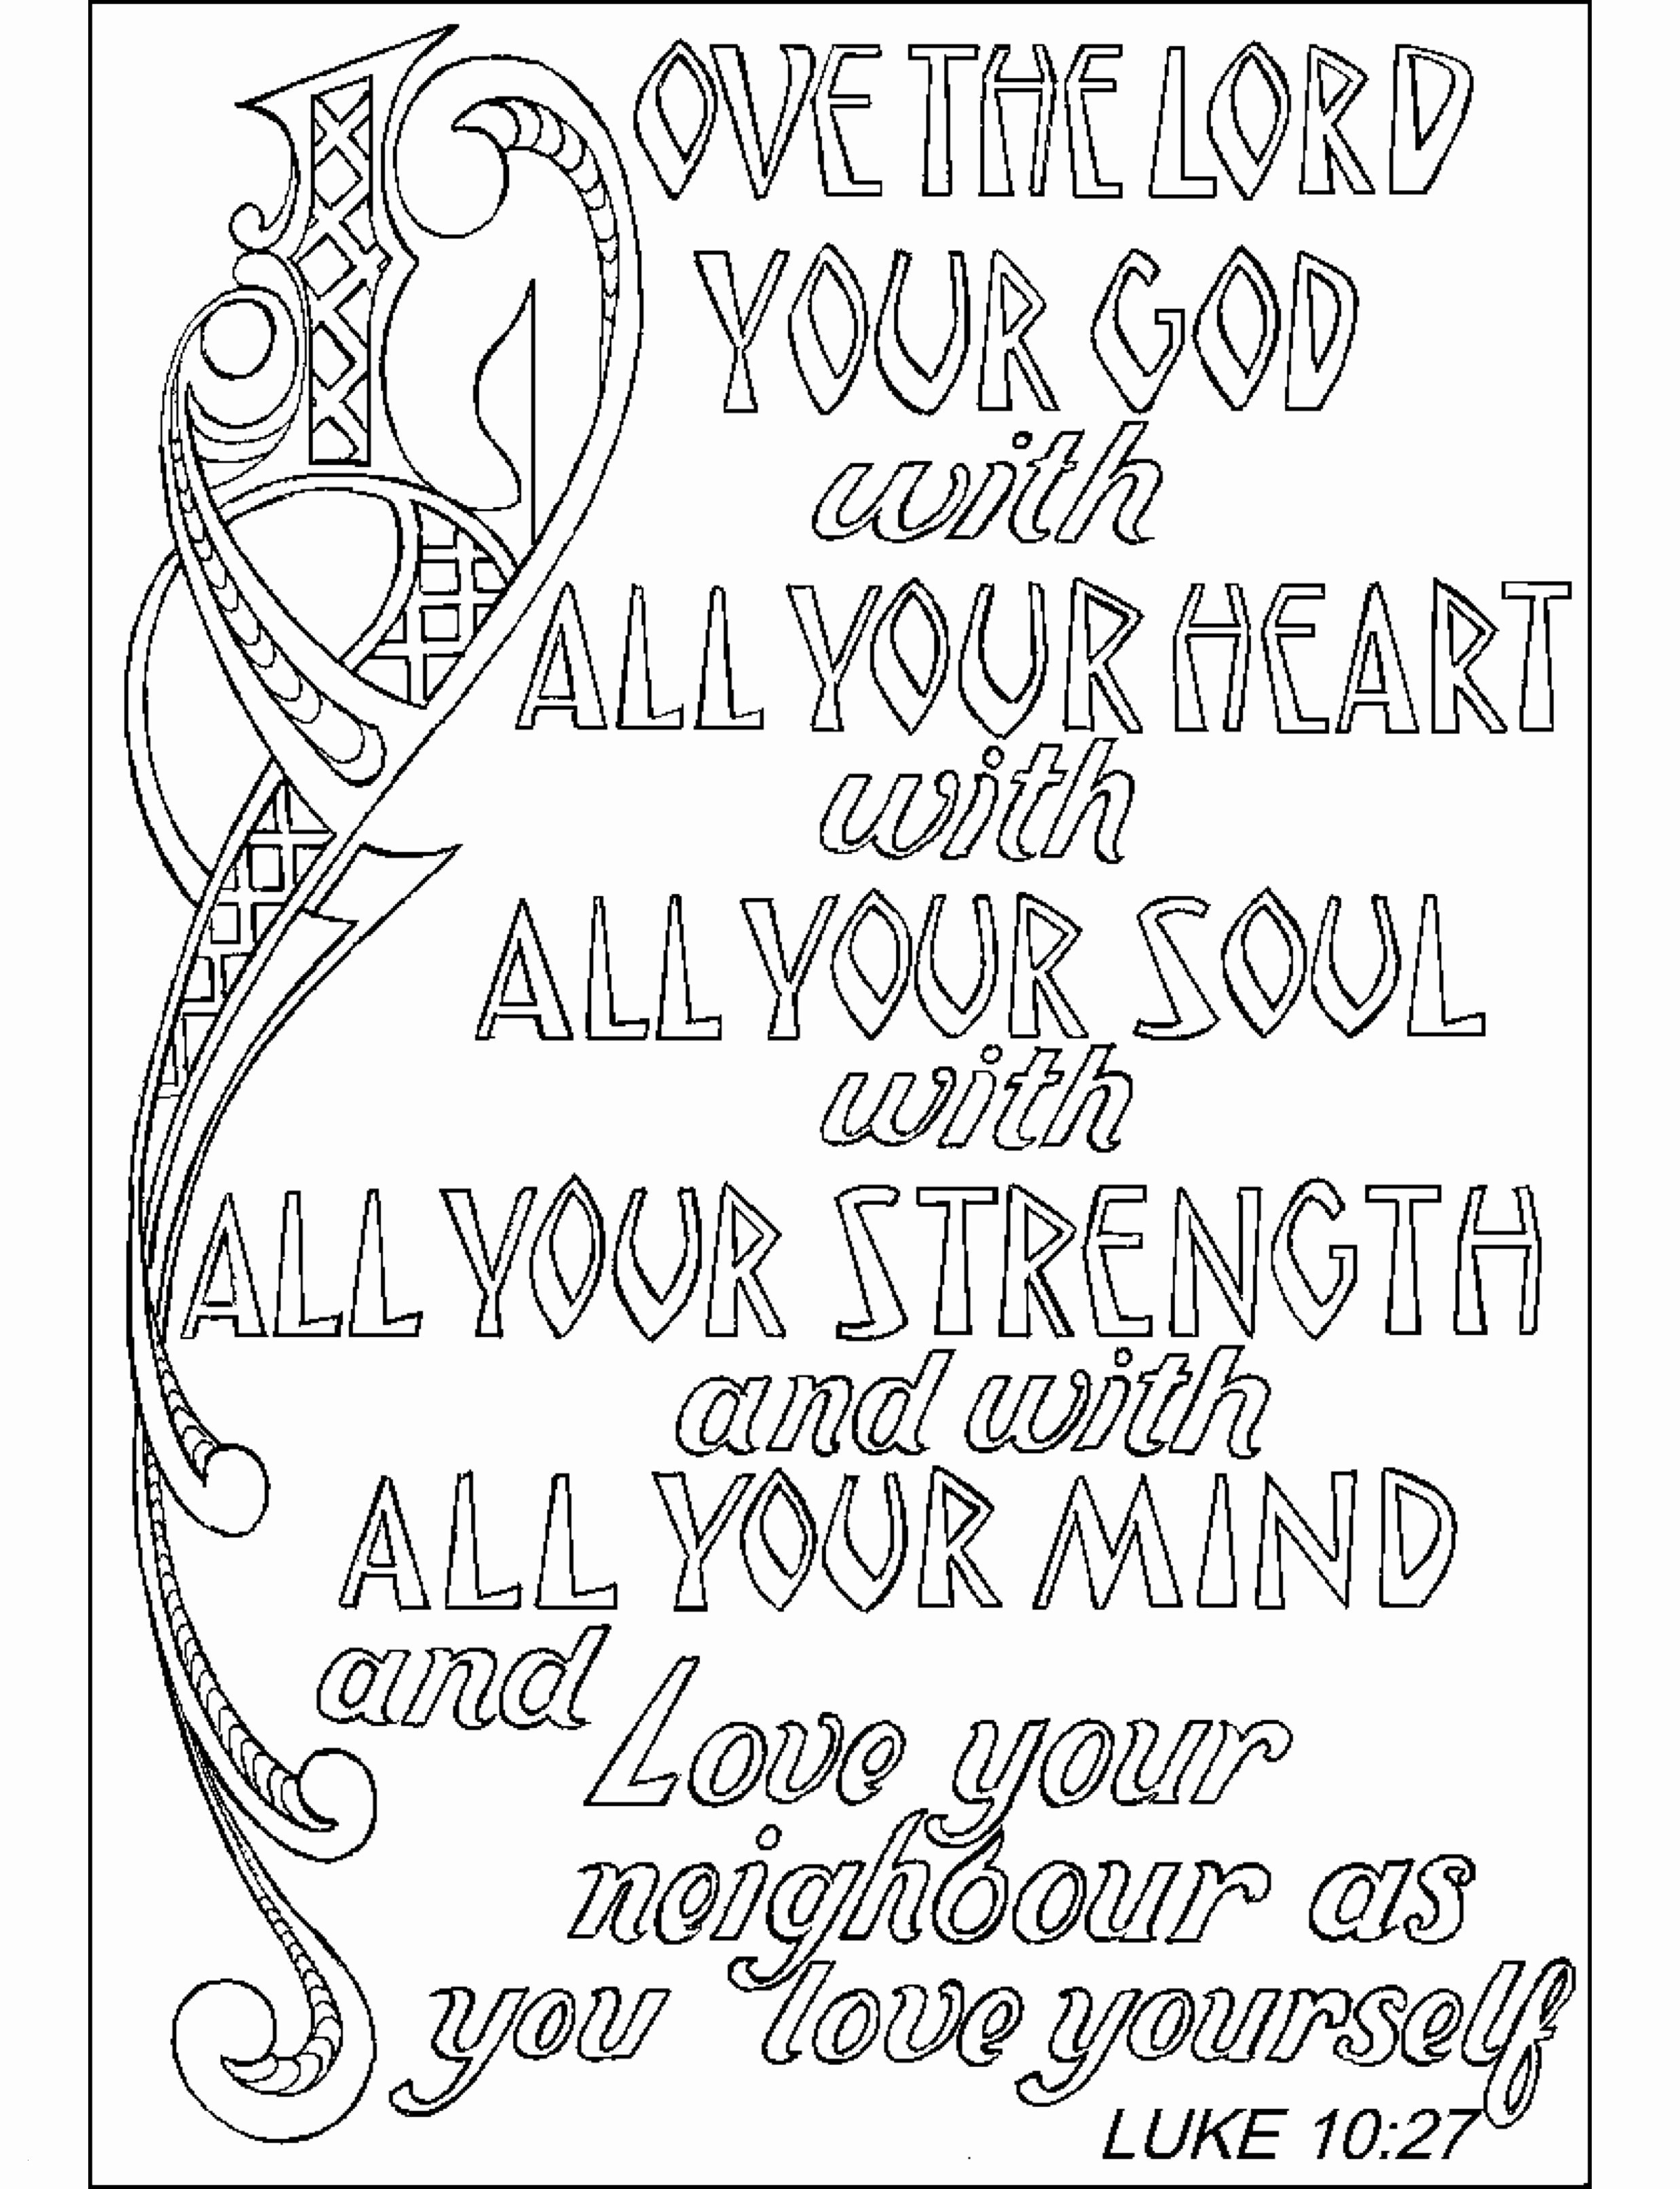 Coloring Pages About The Ten Commandments With Free Printable - Free Printable Ten Commandments Coloring Pages